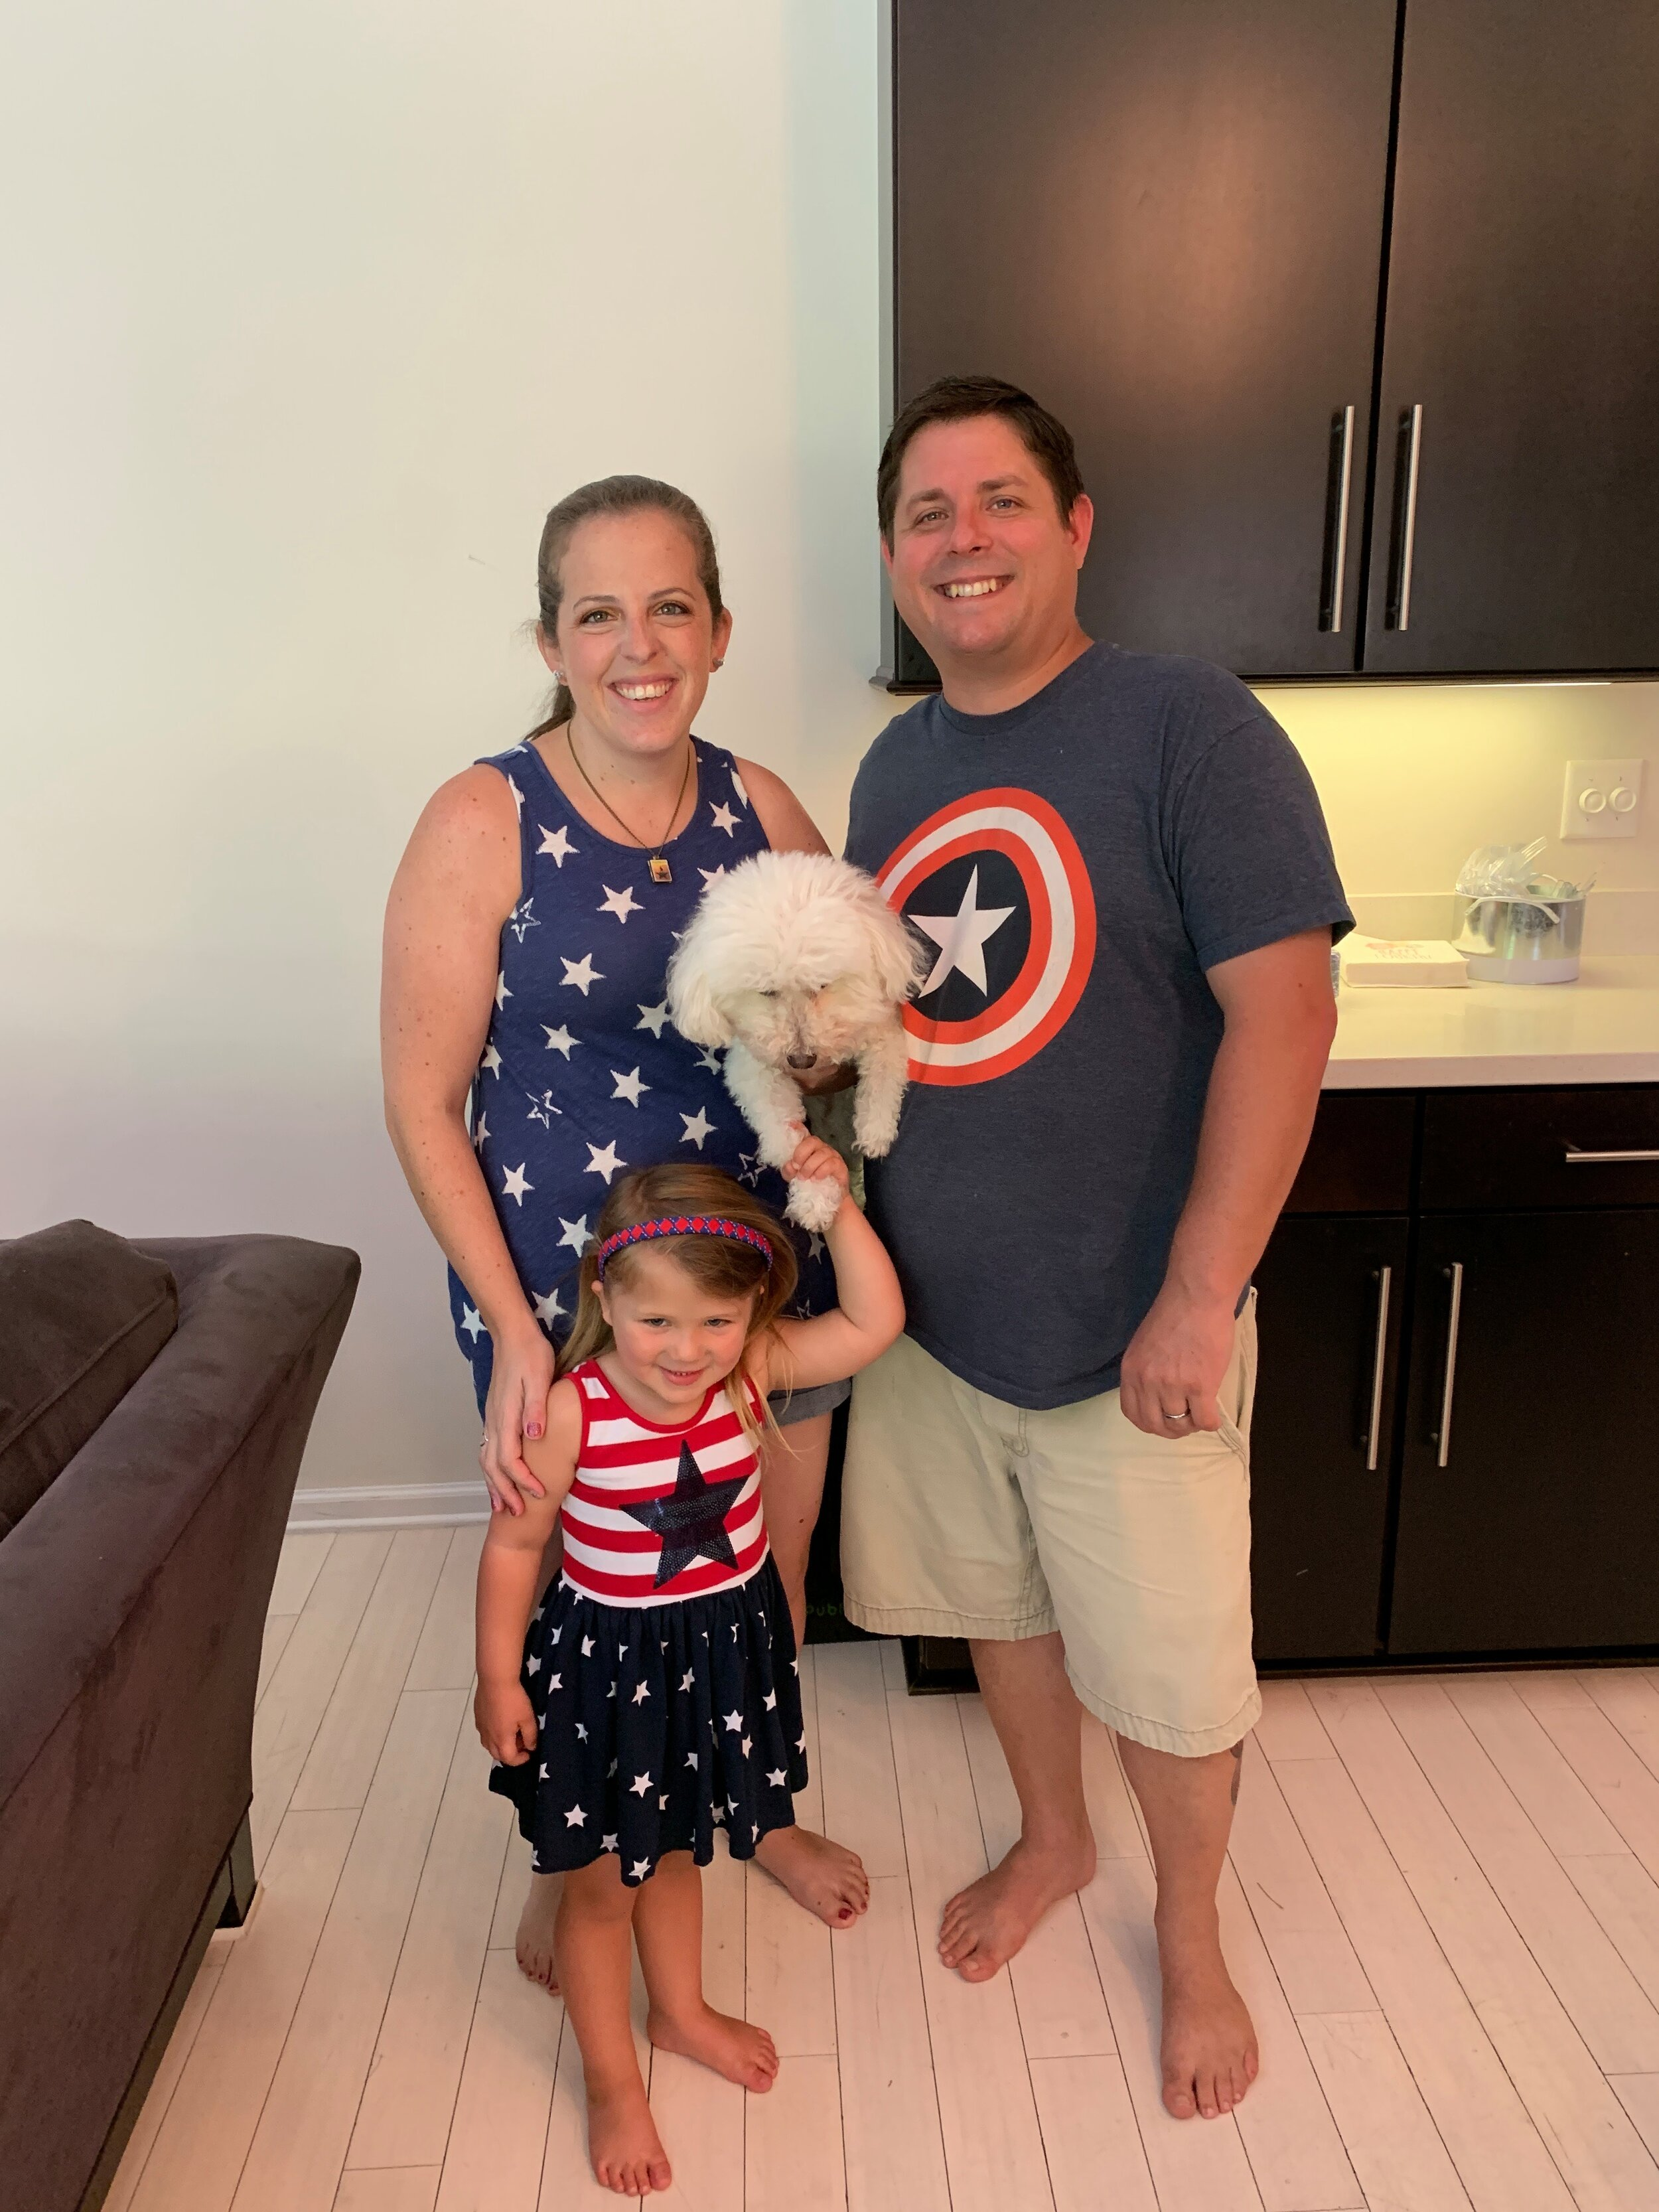 At our annual 4th of July party